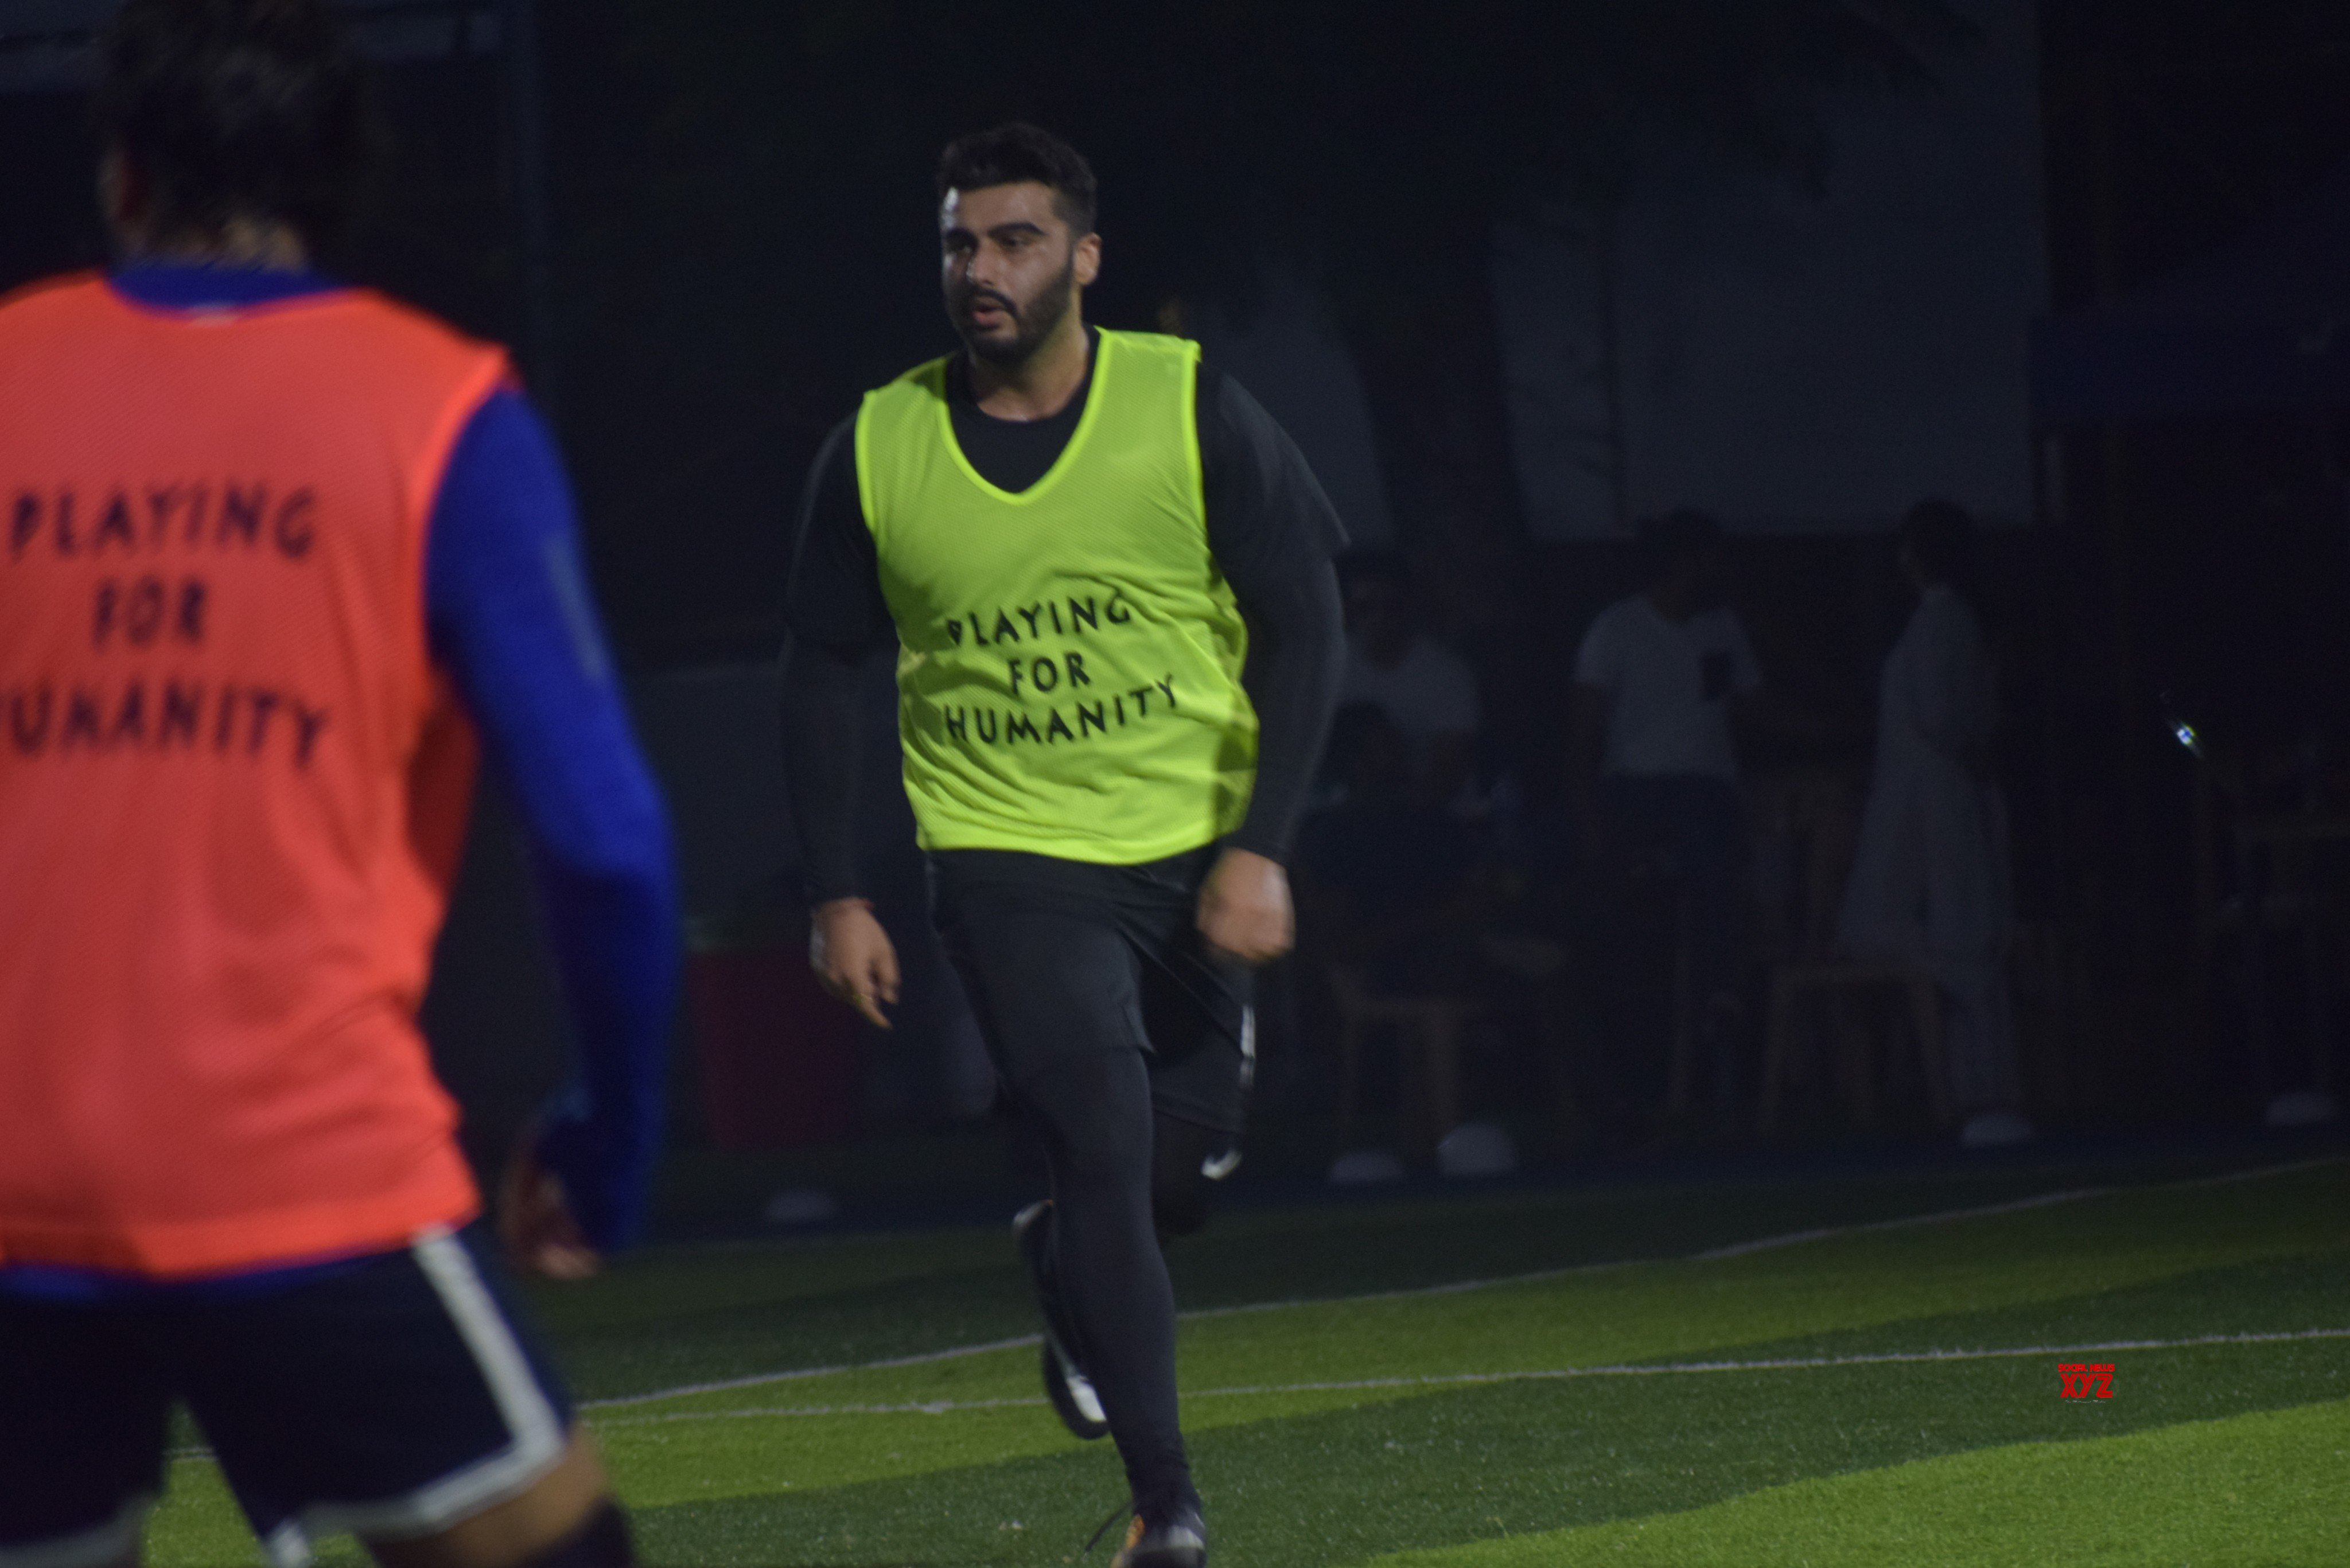 Arjun Kapoor And Other Bollywood Celebs Playing Football At Juhu - Gallery